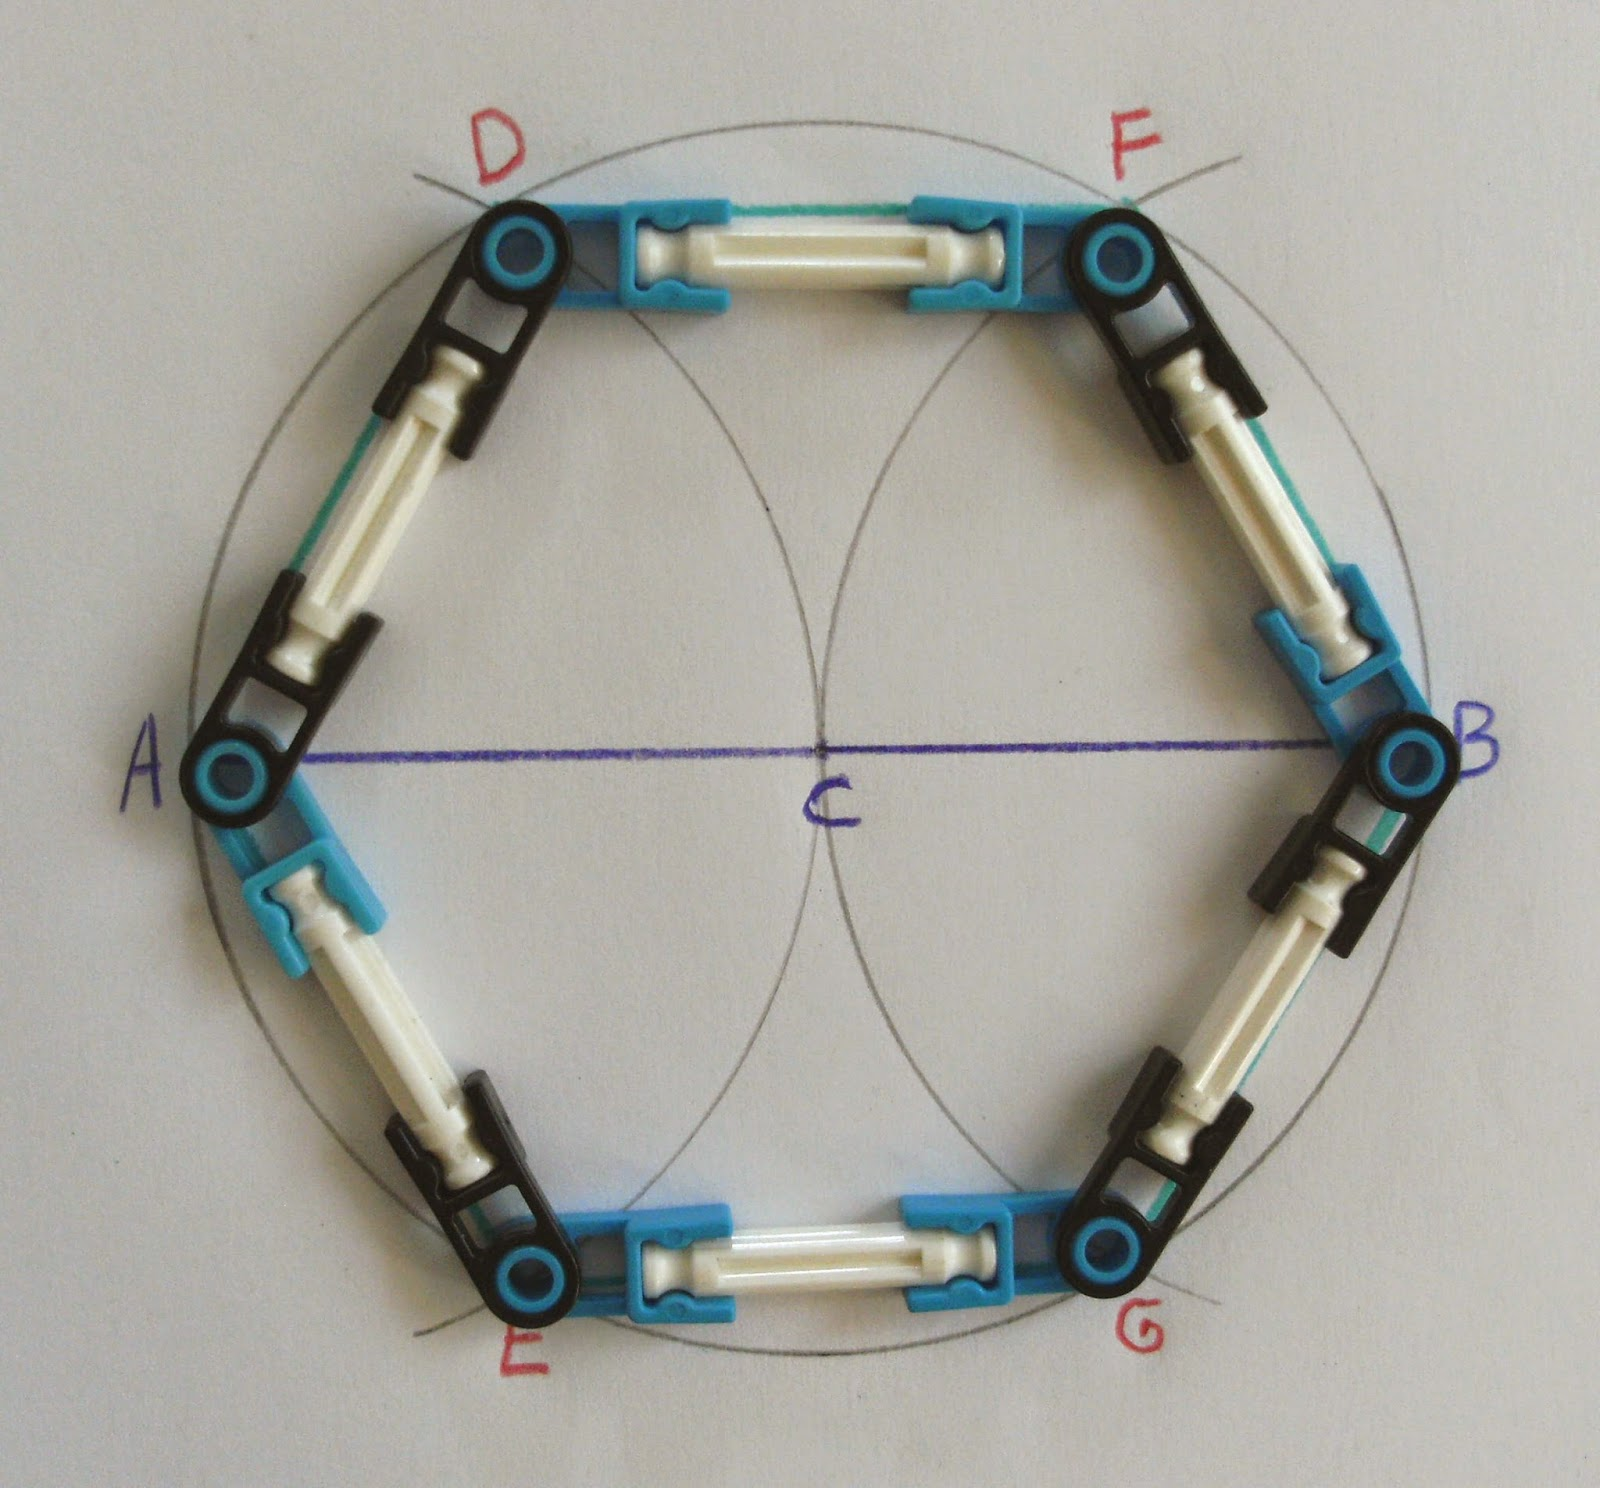 Yet Another Hexagon Inscribed in a Circle | Math on the ...